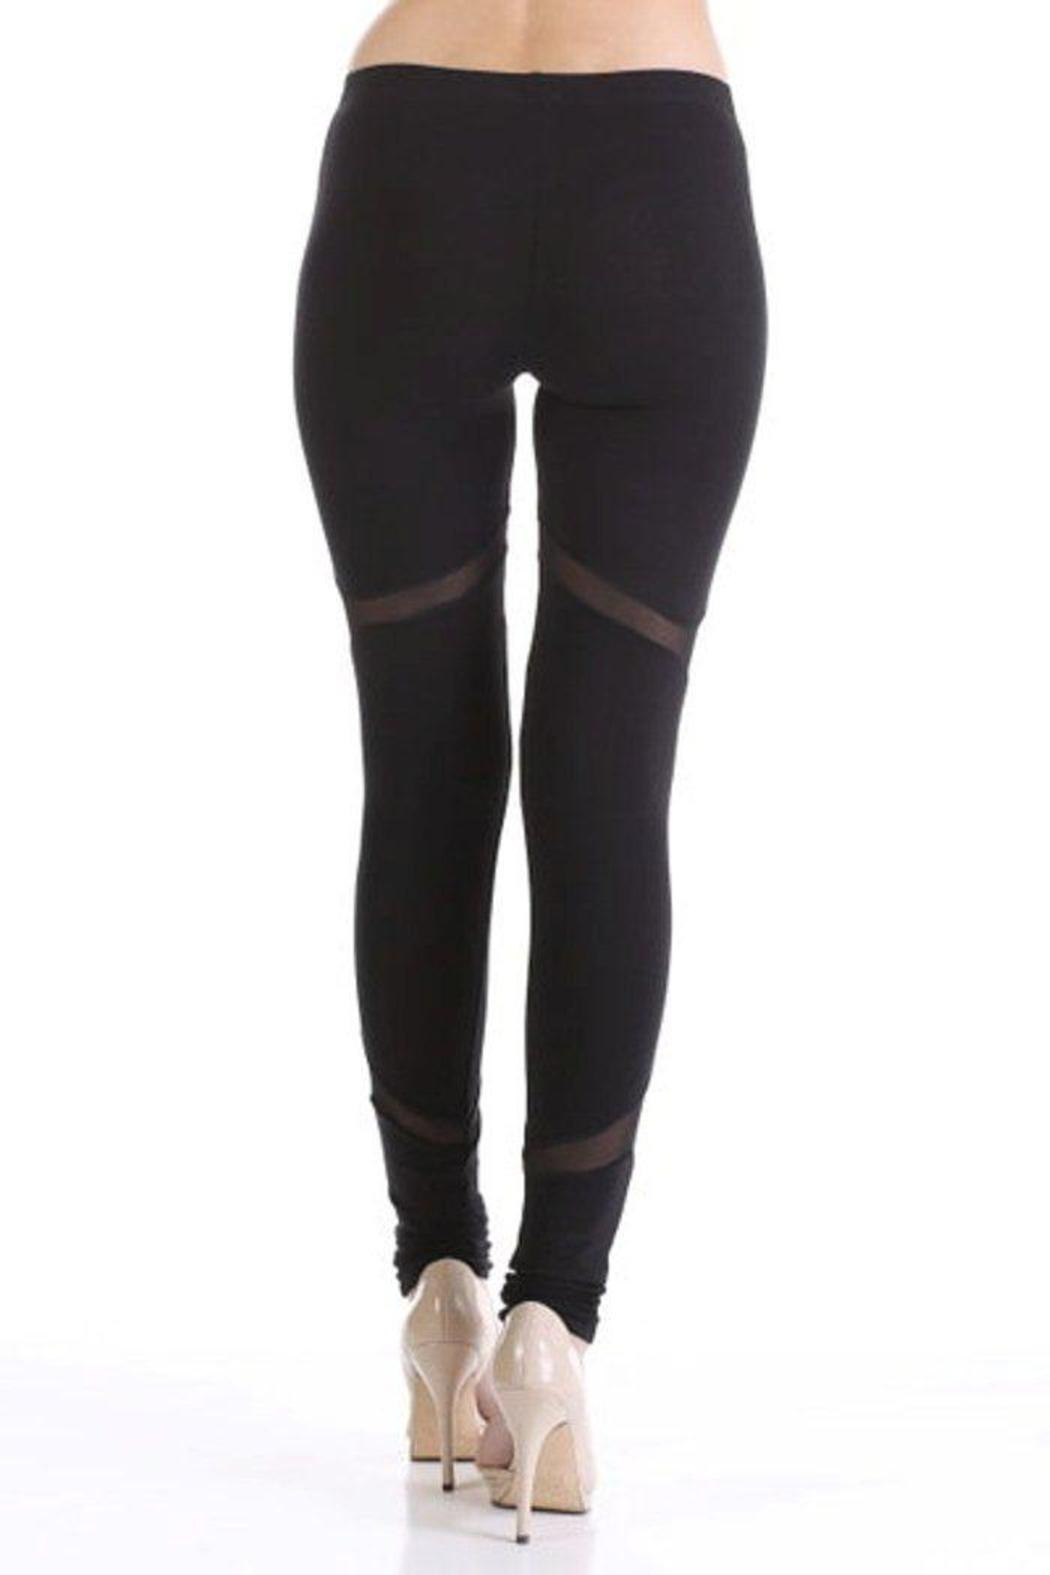 Sheer-Side Seam Legging from Laredo by Dollz Boutique — Shoptiques